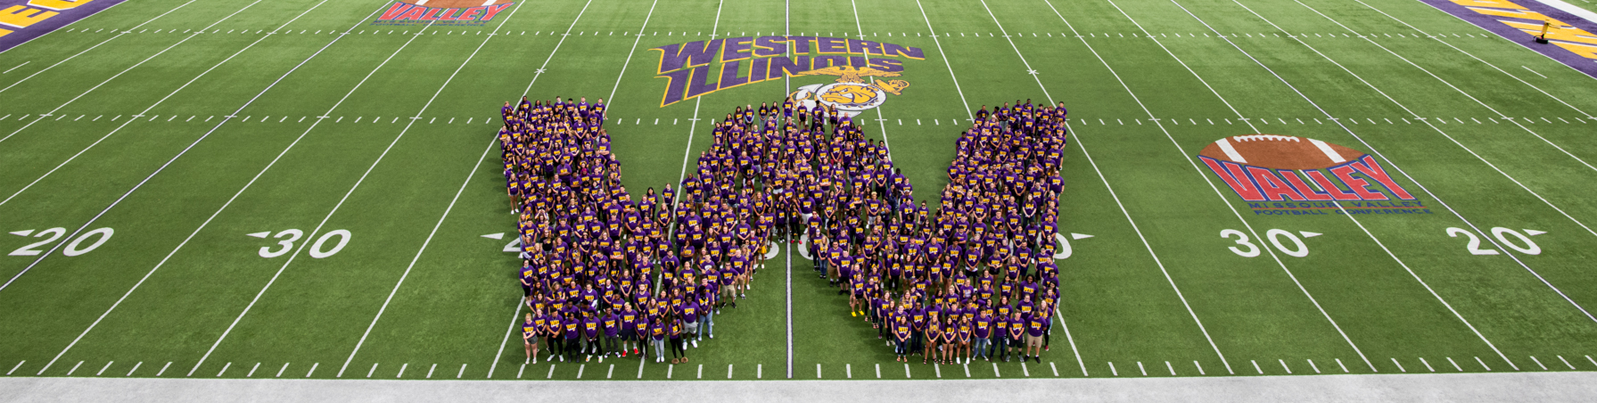 2019 fall class on the football field in the shape of a W